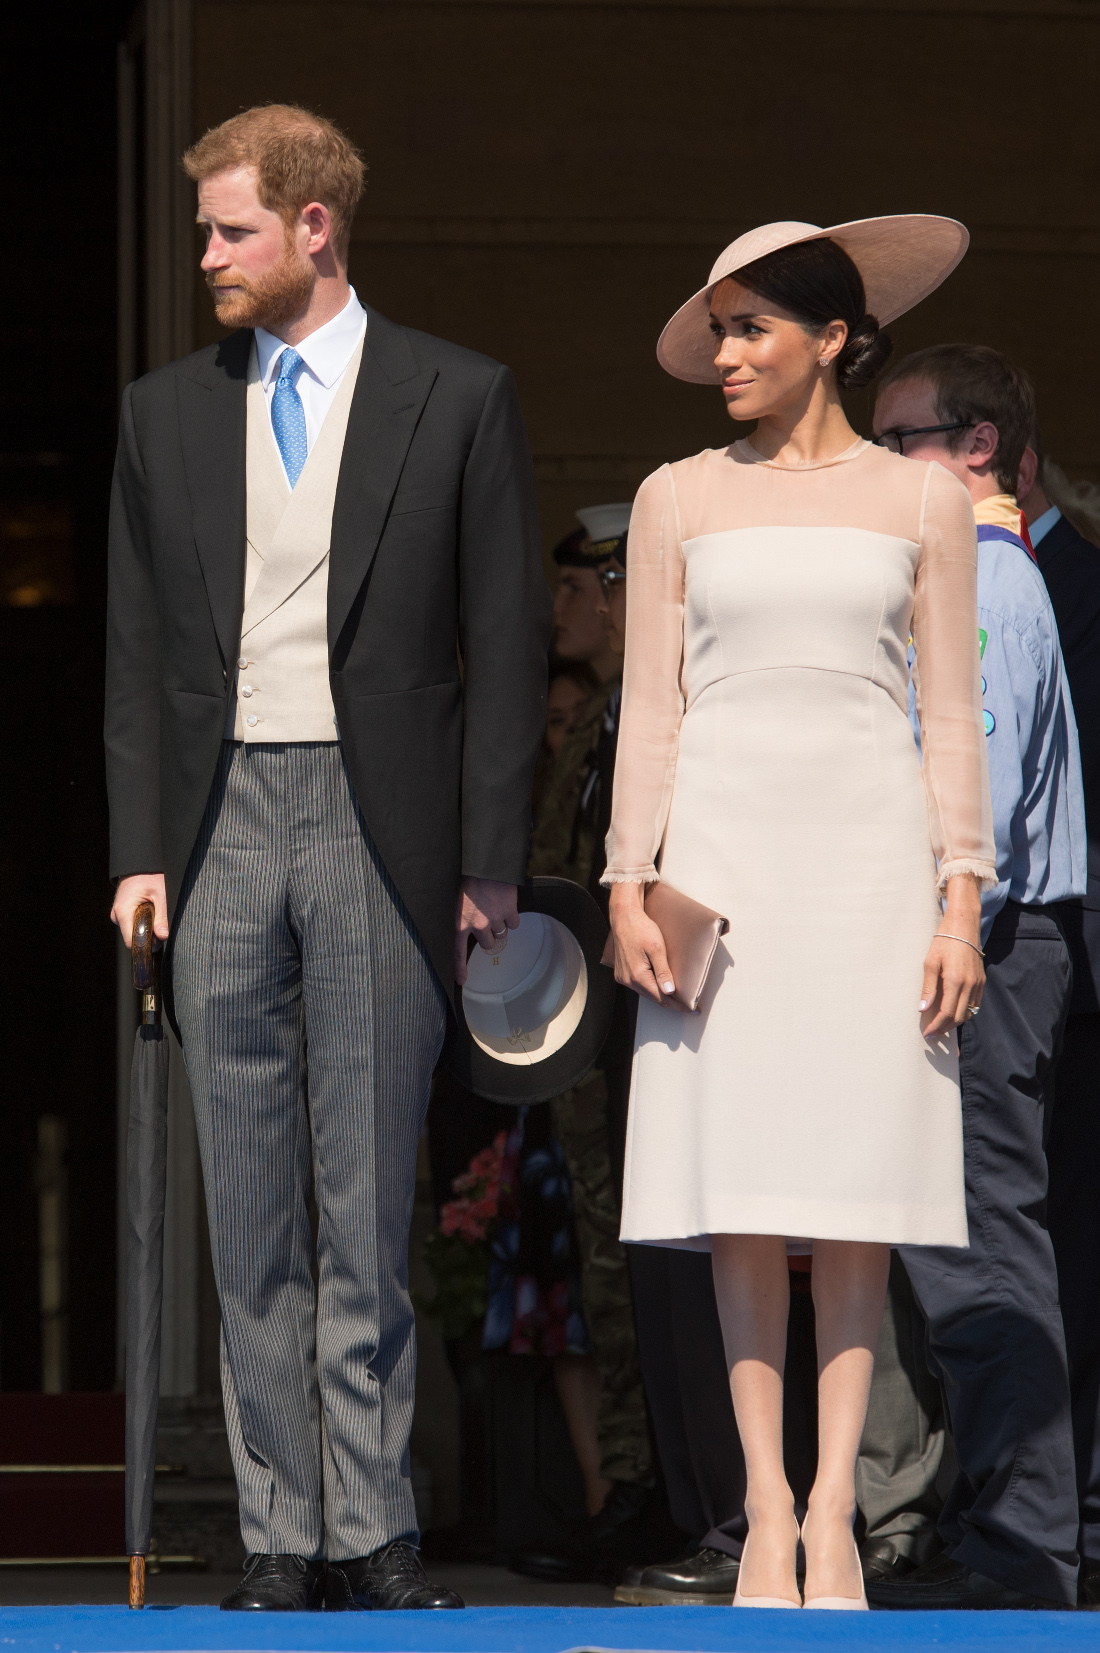 Photo Credit Must Read Zak Hussein<BR/> Prince Harry, the Duke of Sussex and Meghan, the Duchess of Sussex attend The Prince of Wales' 70th Birthday Patronage Celebration at Buckingham Palace <P> Pictured: Prince Harry, the Duke of Sussex and Meghan, The Duchess of Sussex <B>Ref: SPL1701731  220518  </B><BR/> Picture by: Zak Hussein<BR/> </P><P>